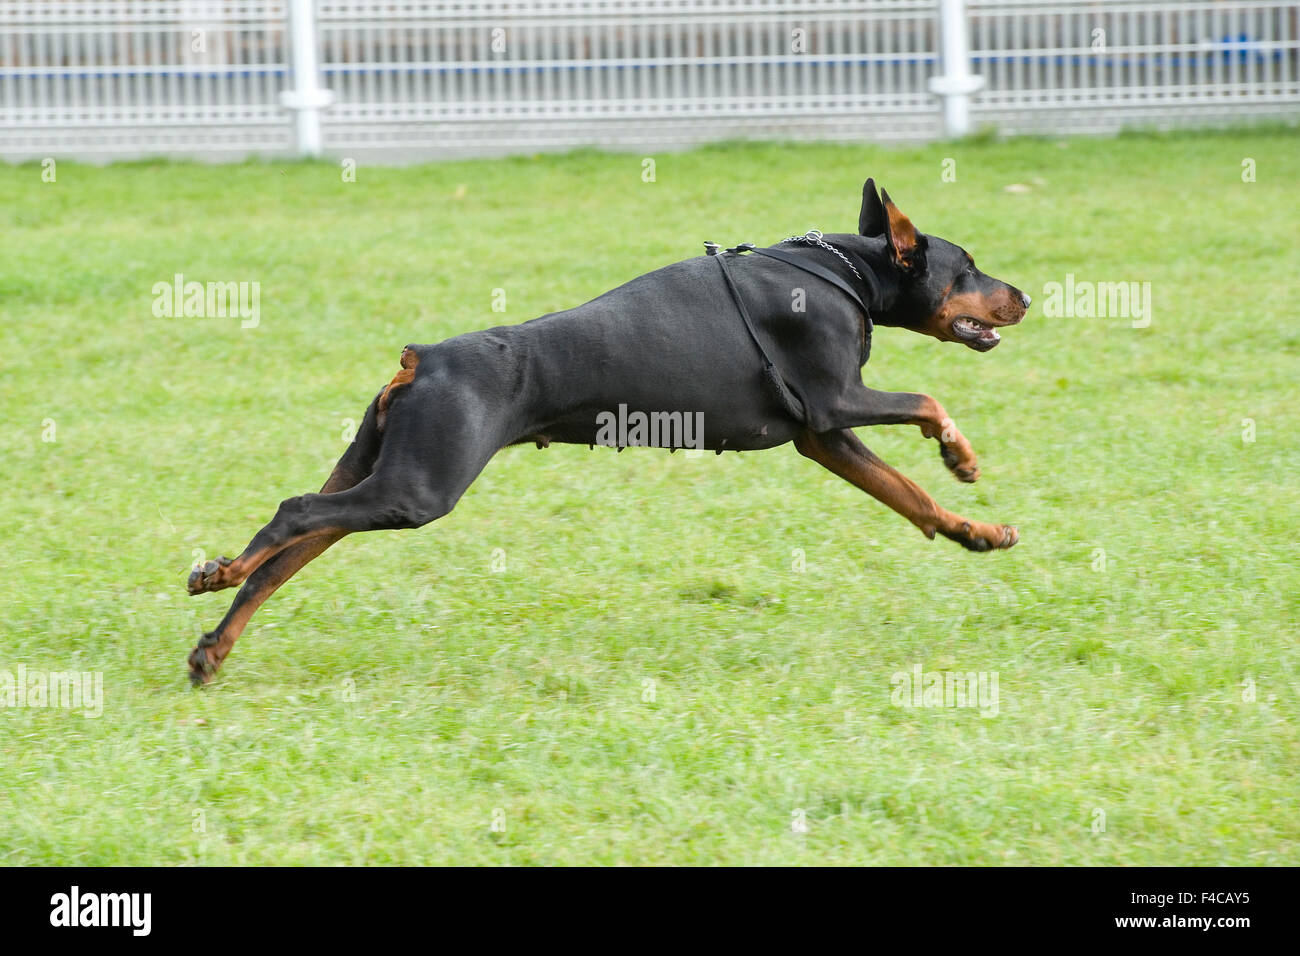 dobermann running/ playing - Stock Image